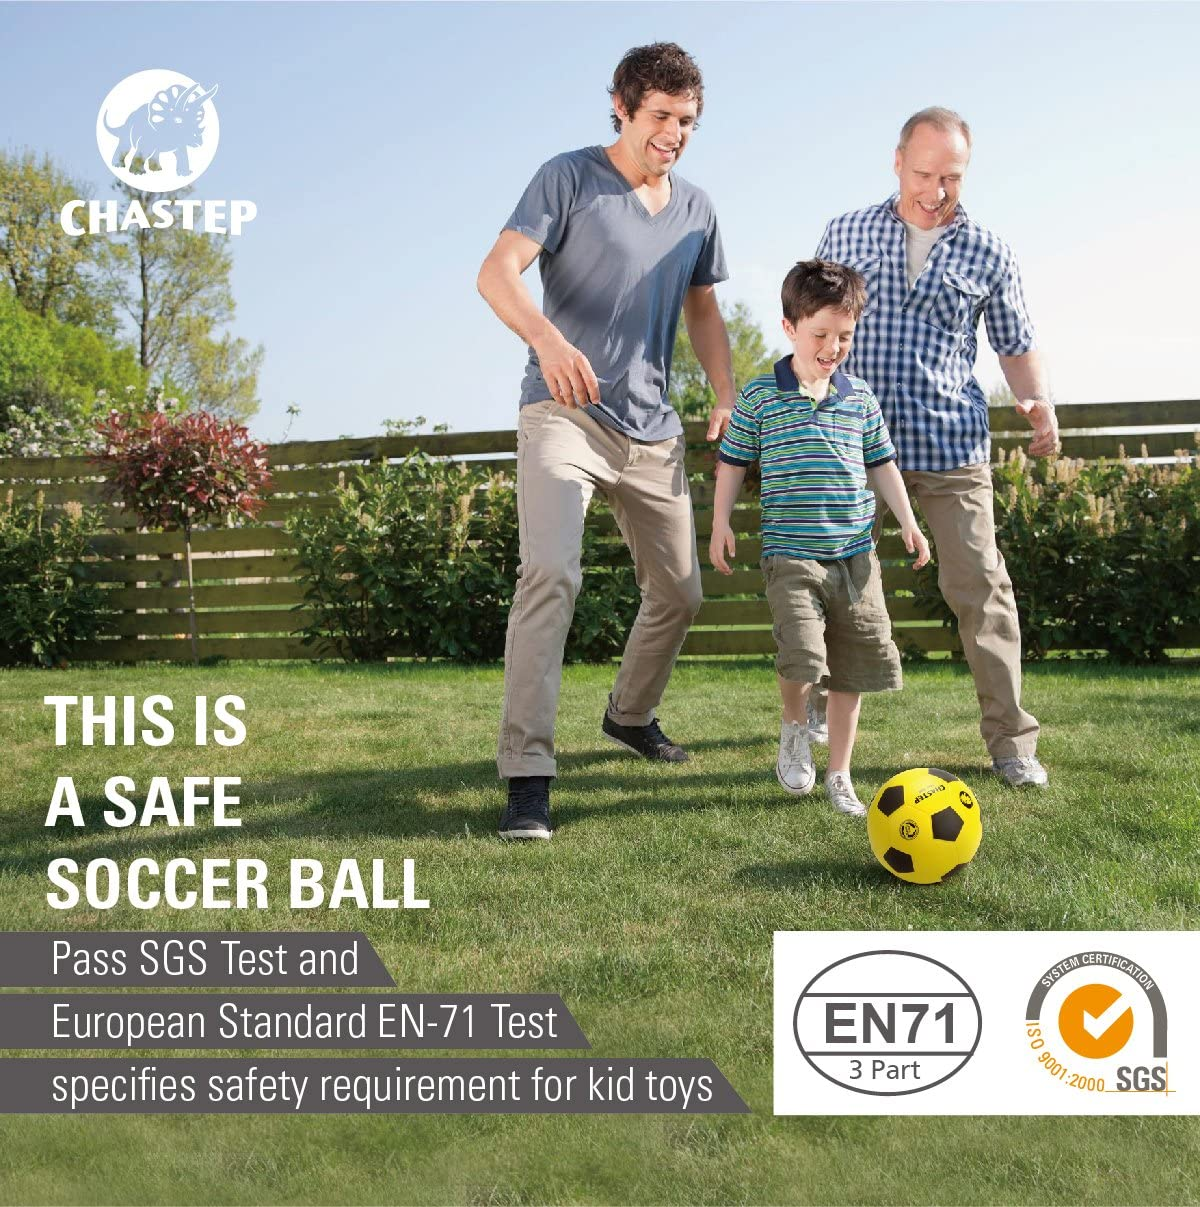 Chastep 8 Foam Soccer Ball Indoor//Outdoor Perfect for Kids or Beginner Play and Excercise Soft Kick /& Safe,Yellow//Black